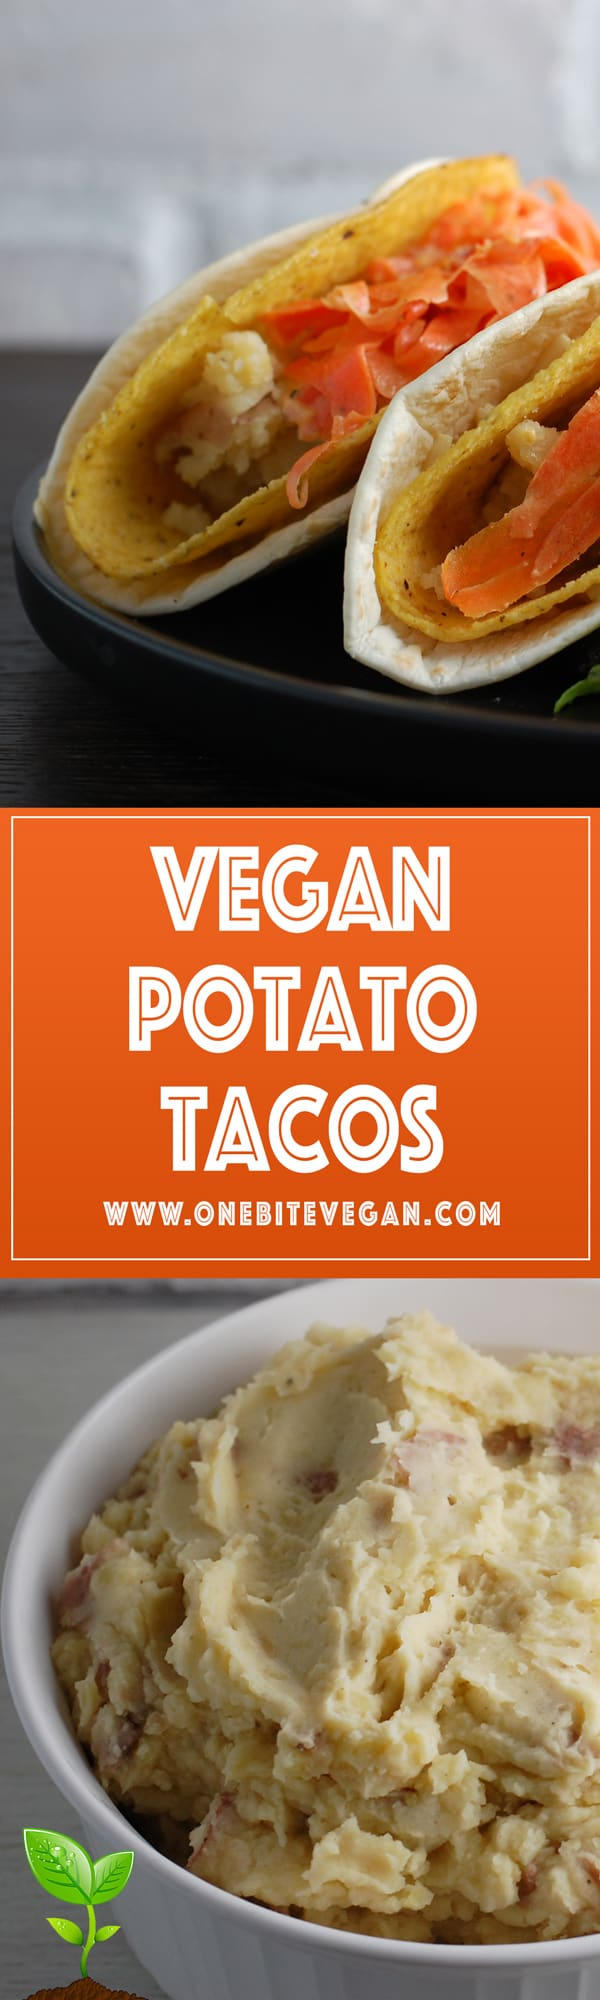 Vegan potato tacos with carrot slaw. A veganizedrecipe ofChef Ludo Lefebvre's dish shown in season 5 of Mind of a Chef.